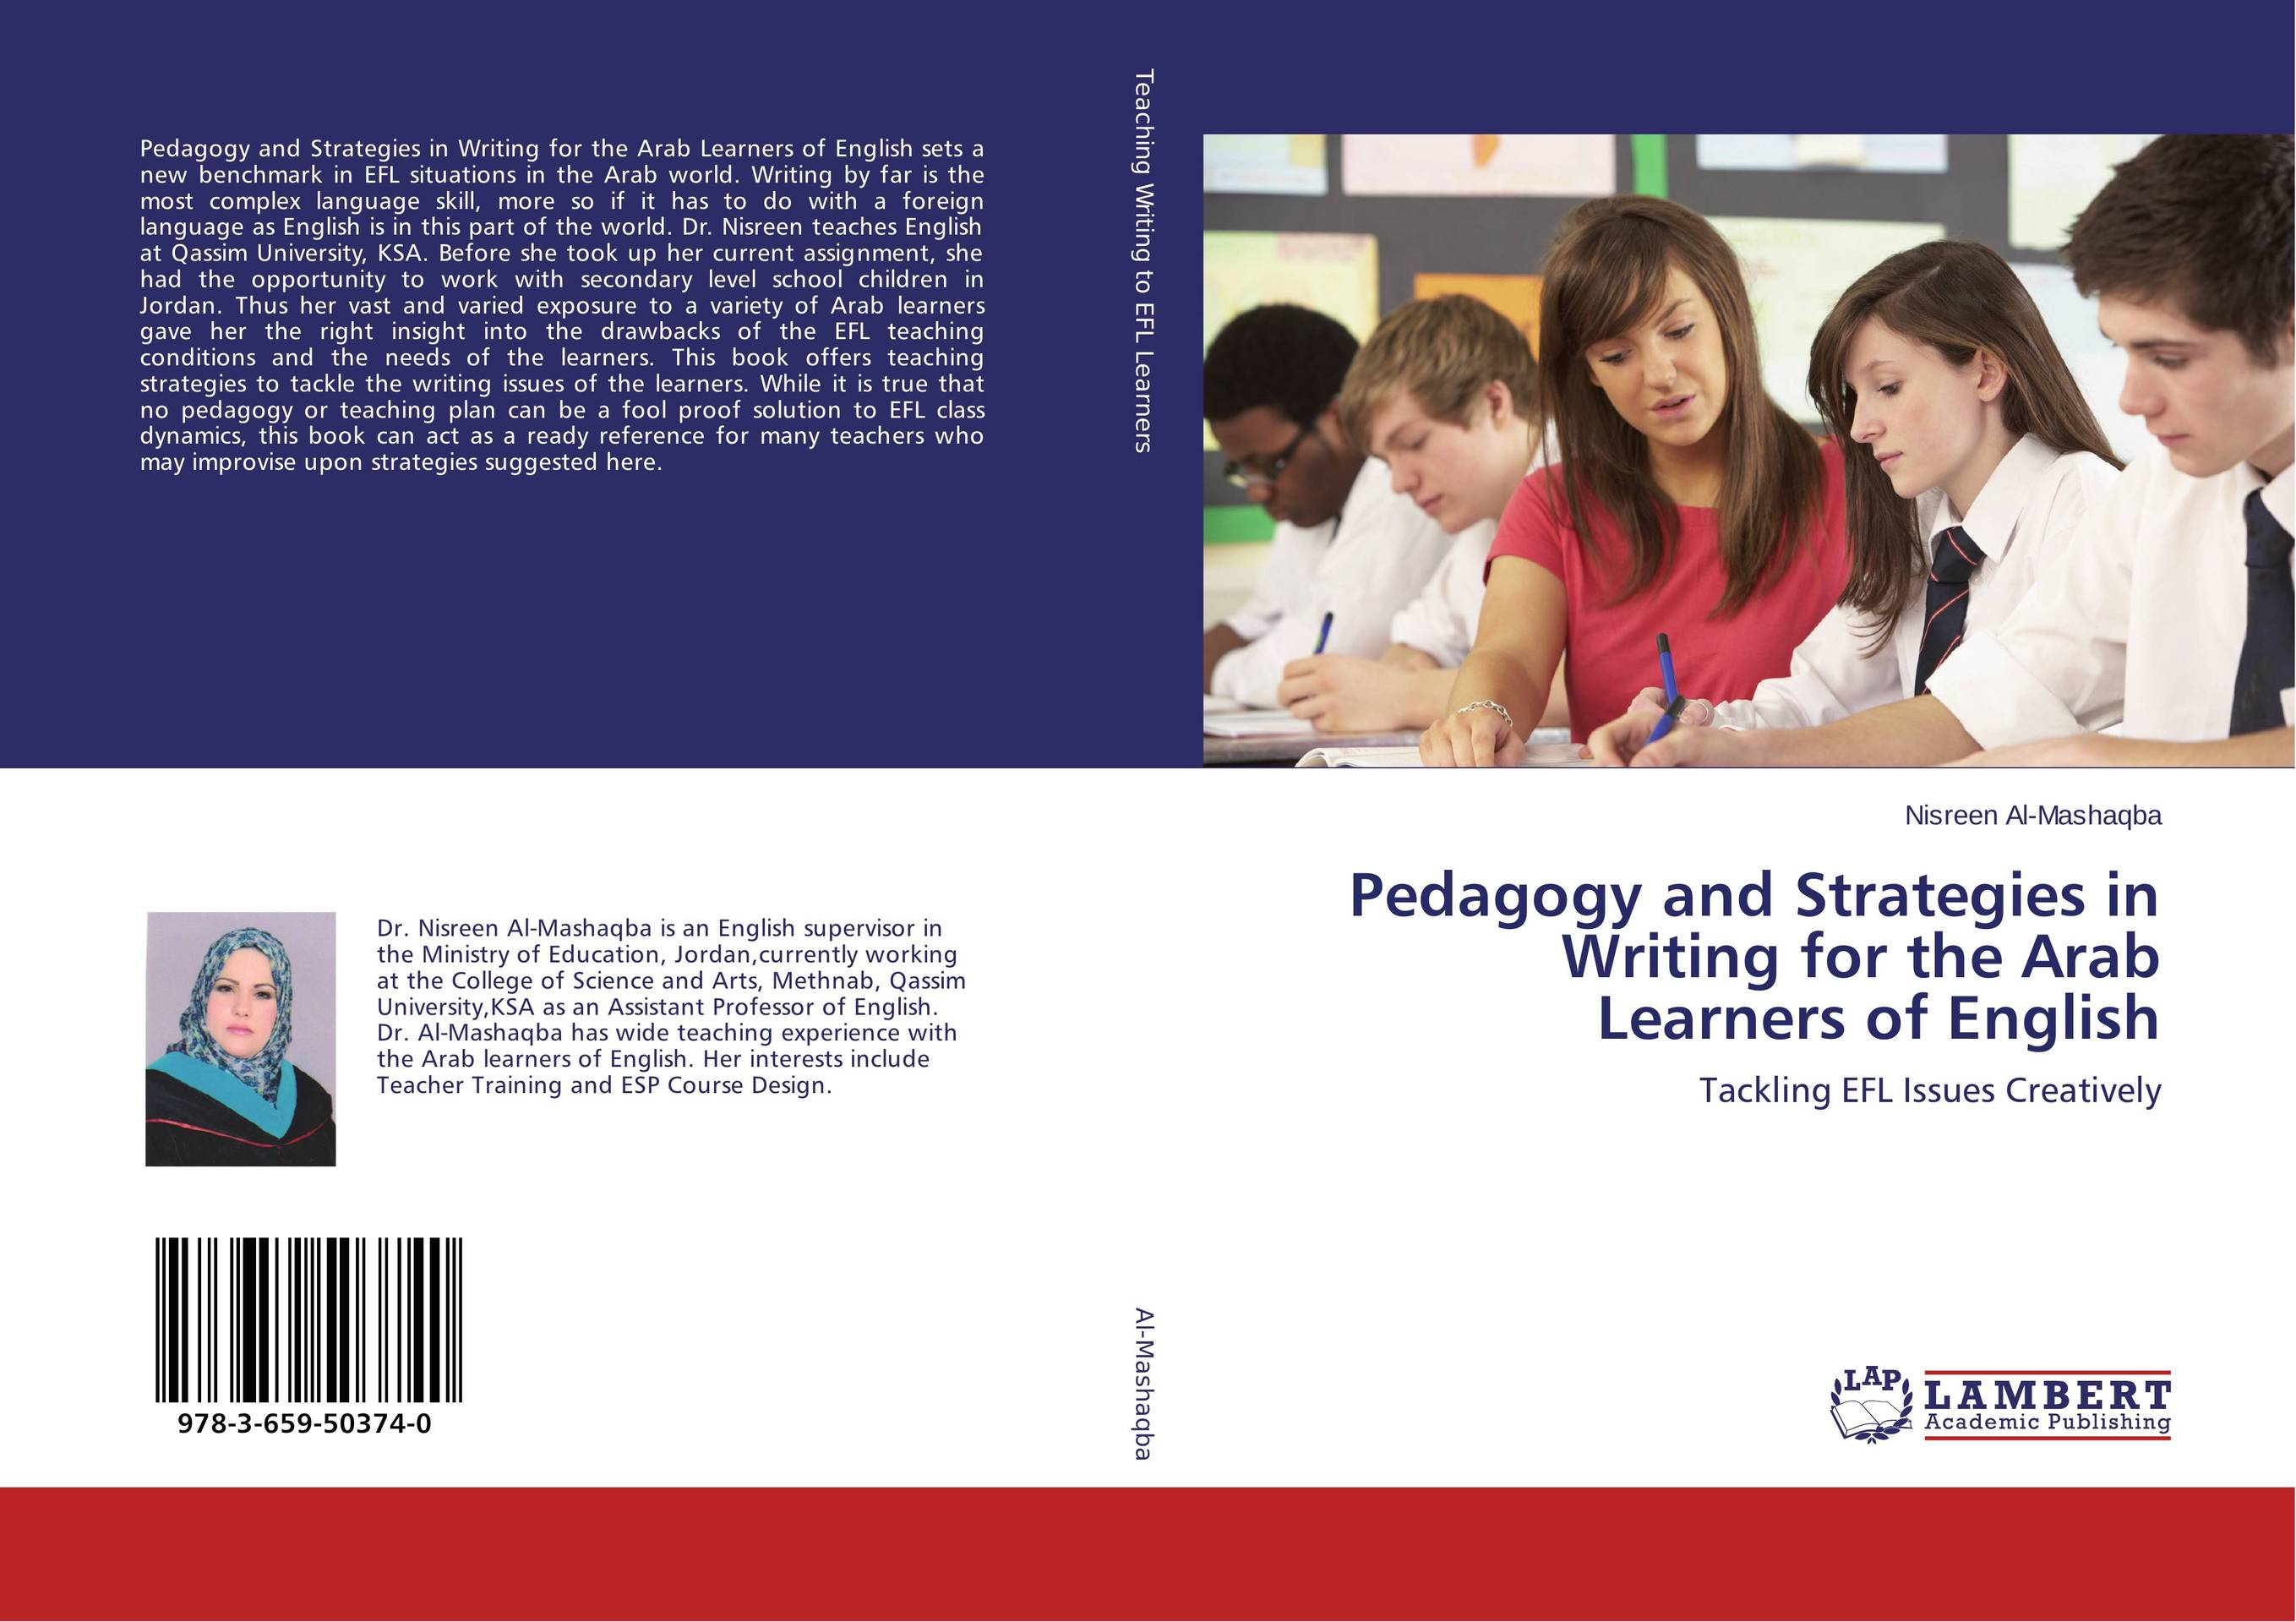 Pedagogy and Strategies in Writing for the Arab Learners of English jane ouma alternative approaches to pedagogy